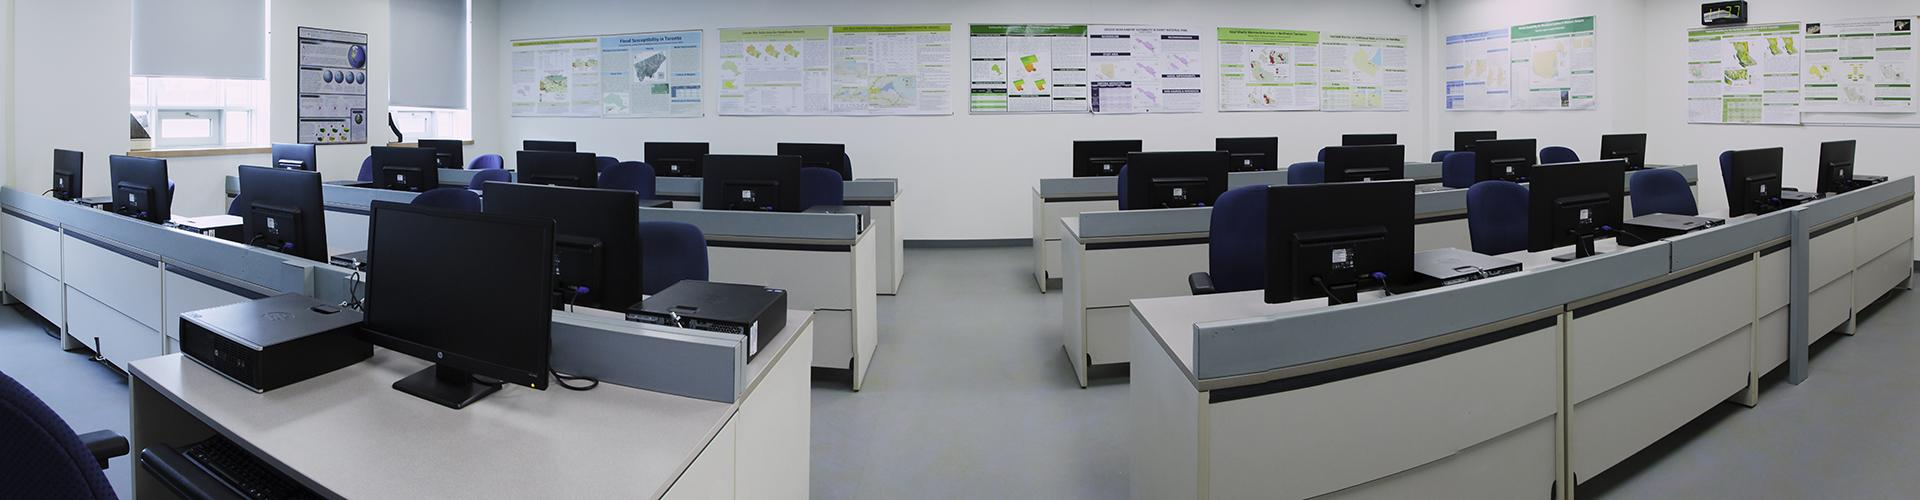 Geographic Information Systems (GIS) Laboratory